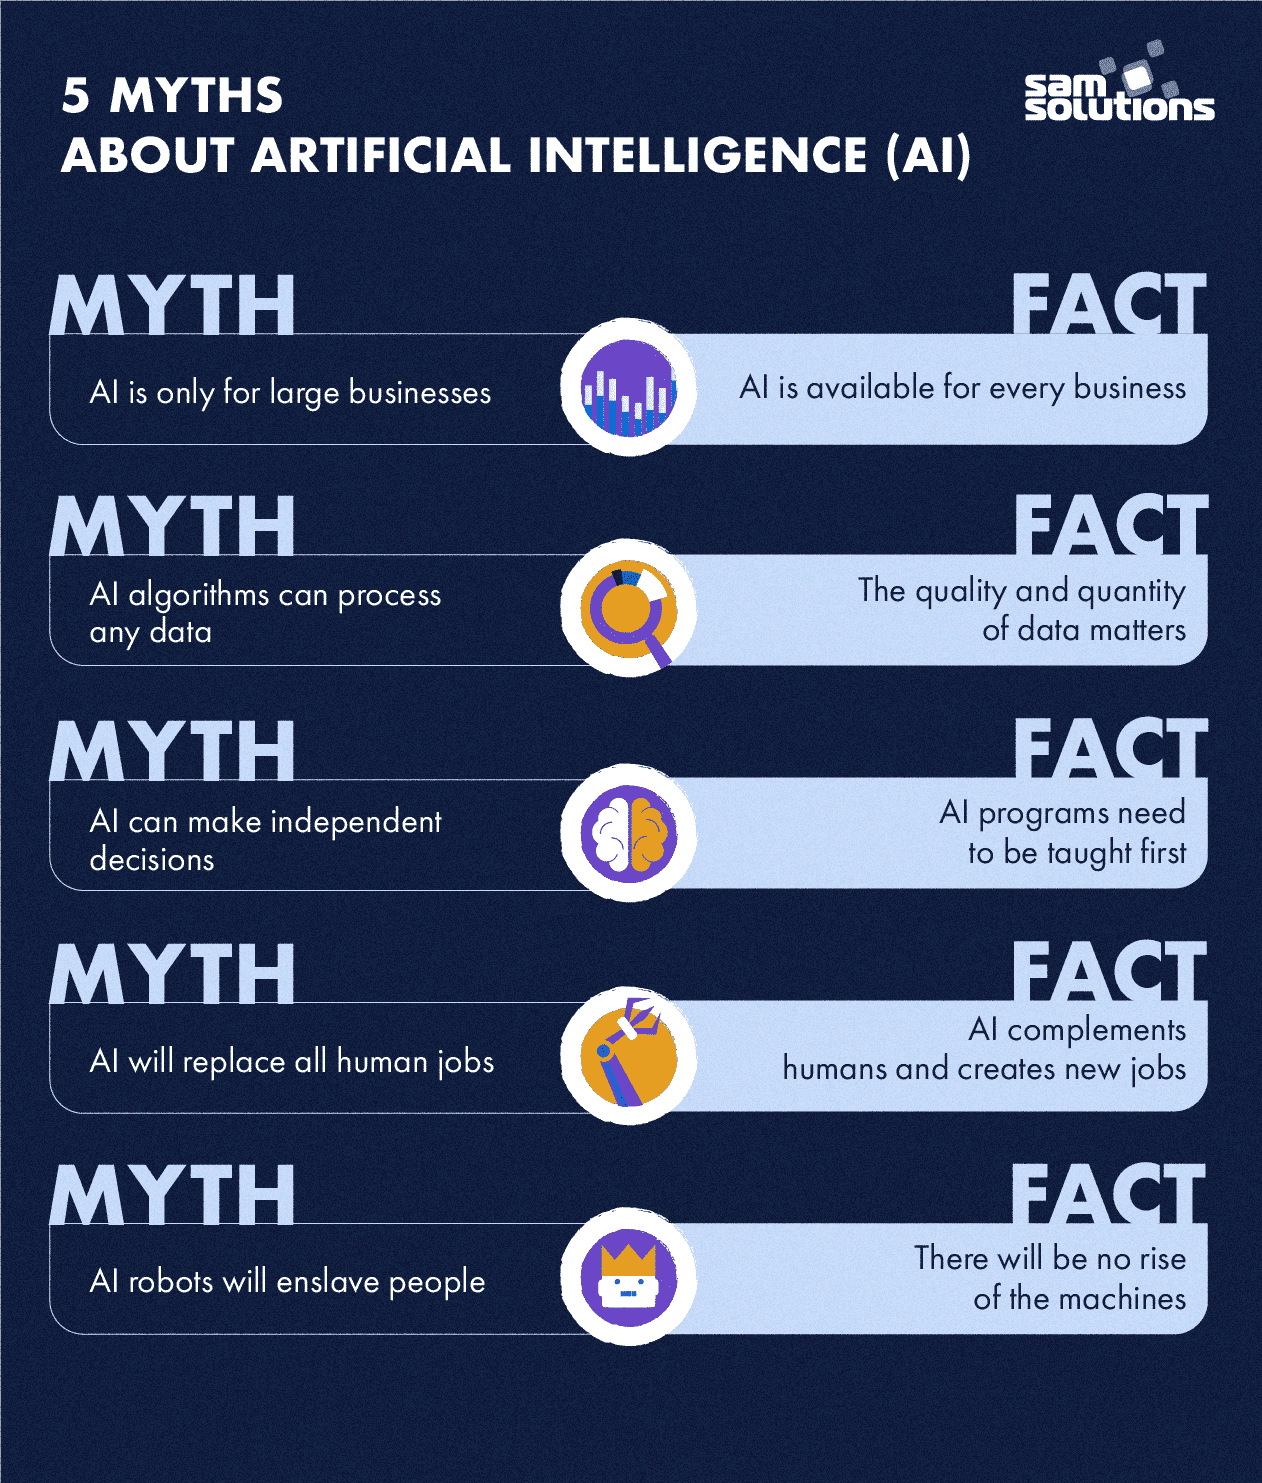 Myths-and-facts-about-AI